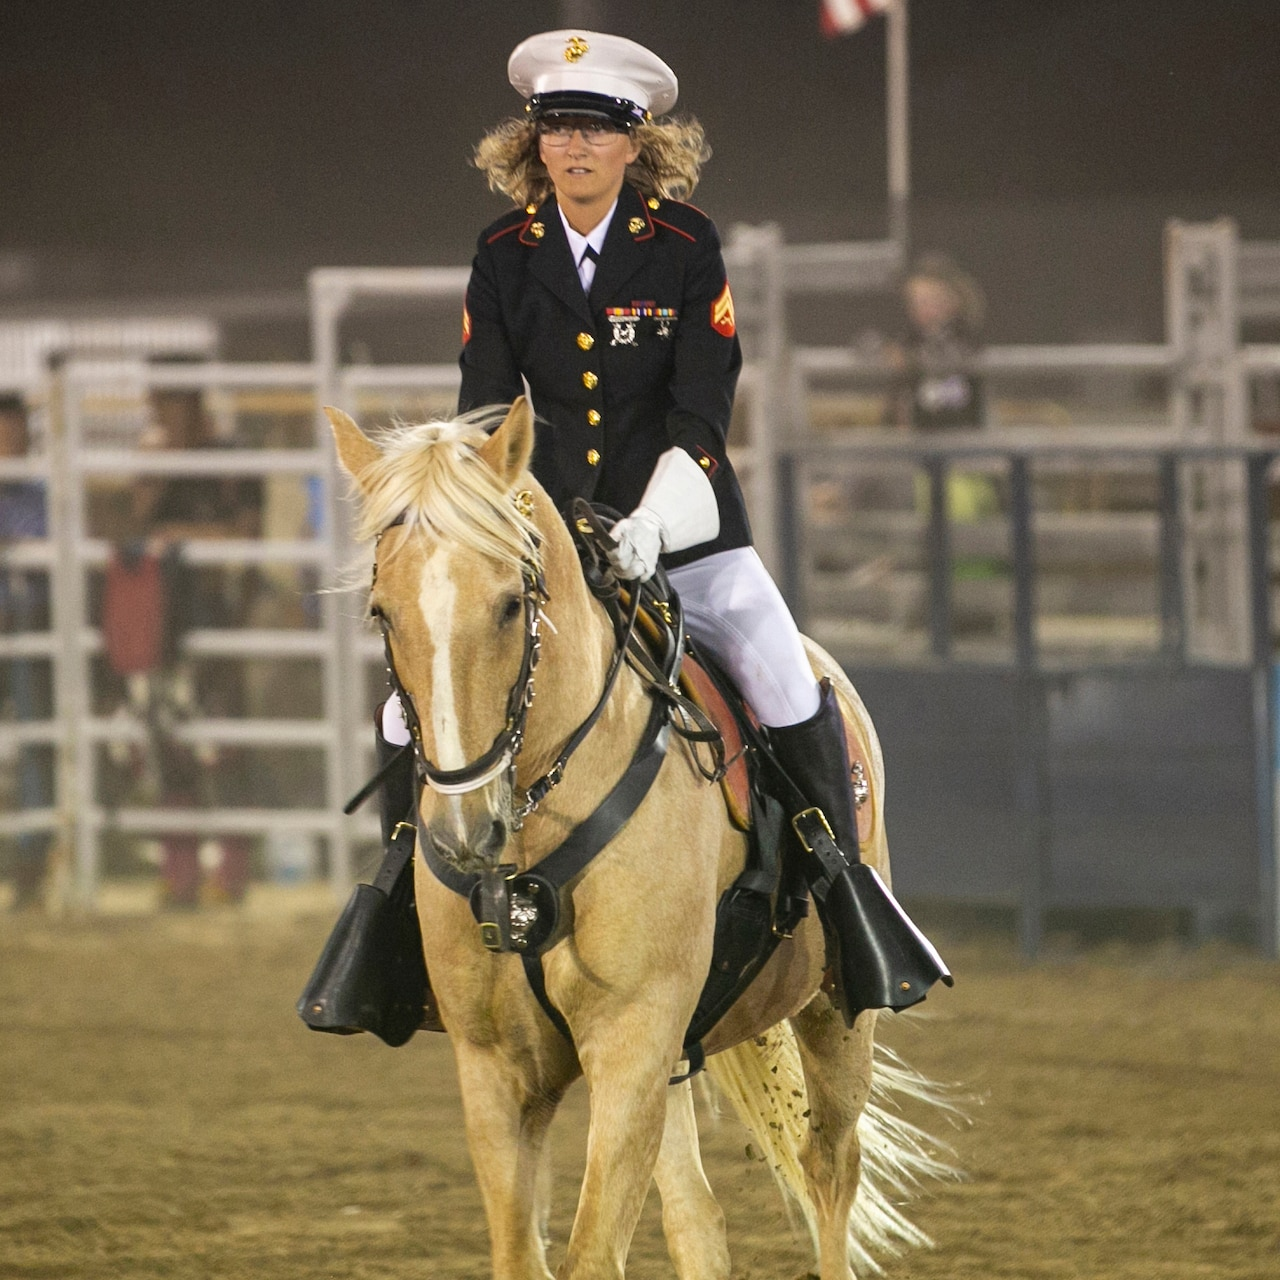 A Marine in formal dress rides a horse at a rodeo.